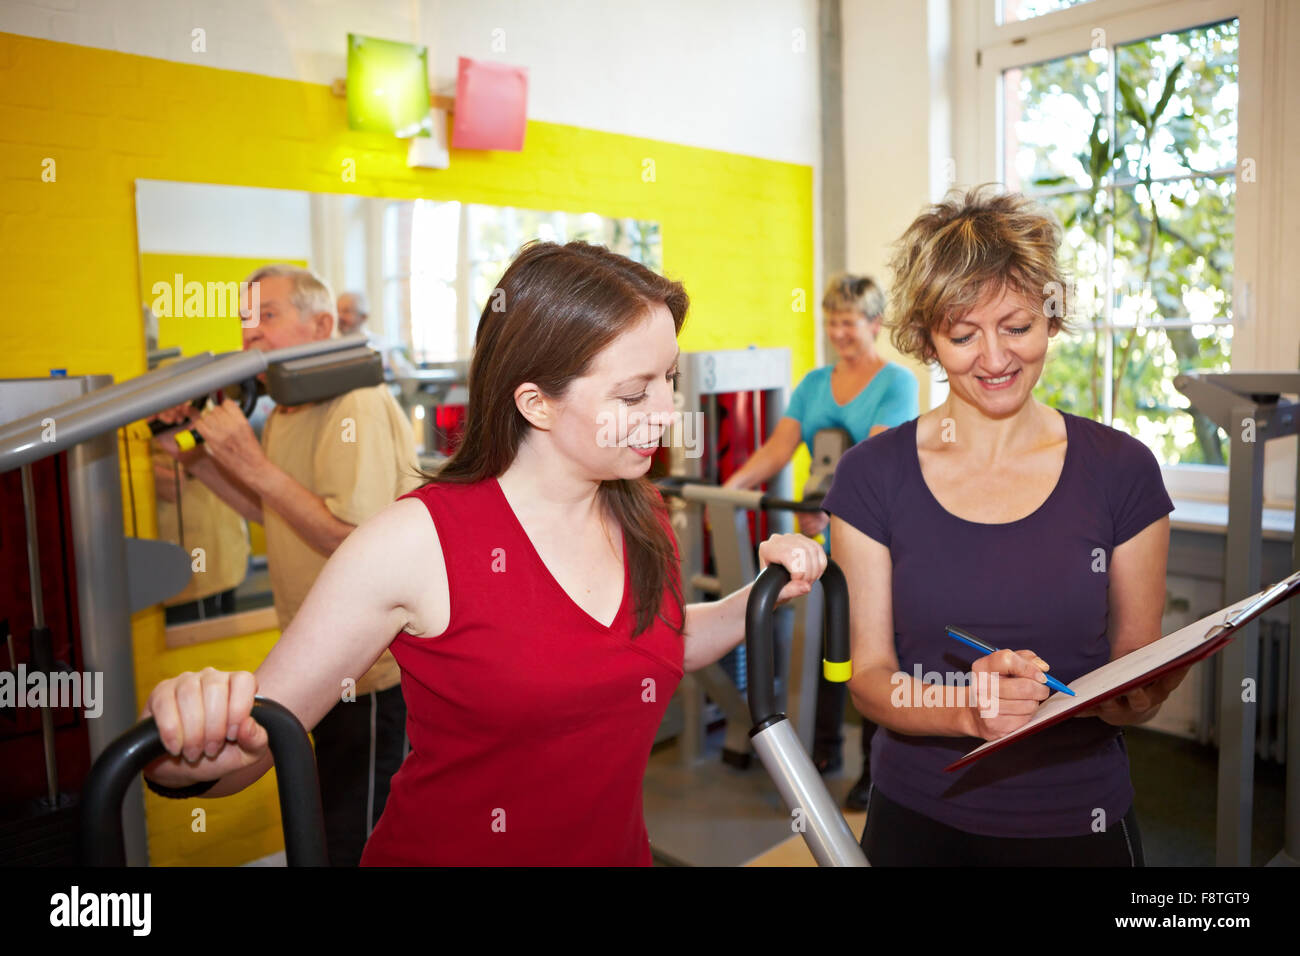 Groupe mixte faisant circuit training in a gym Photo Stock